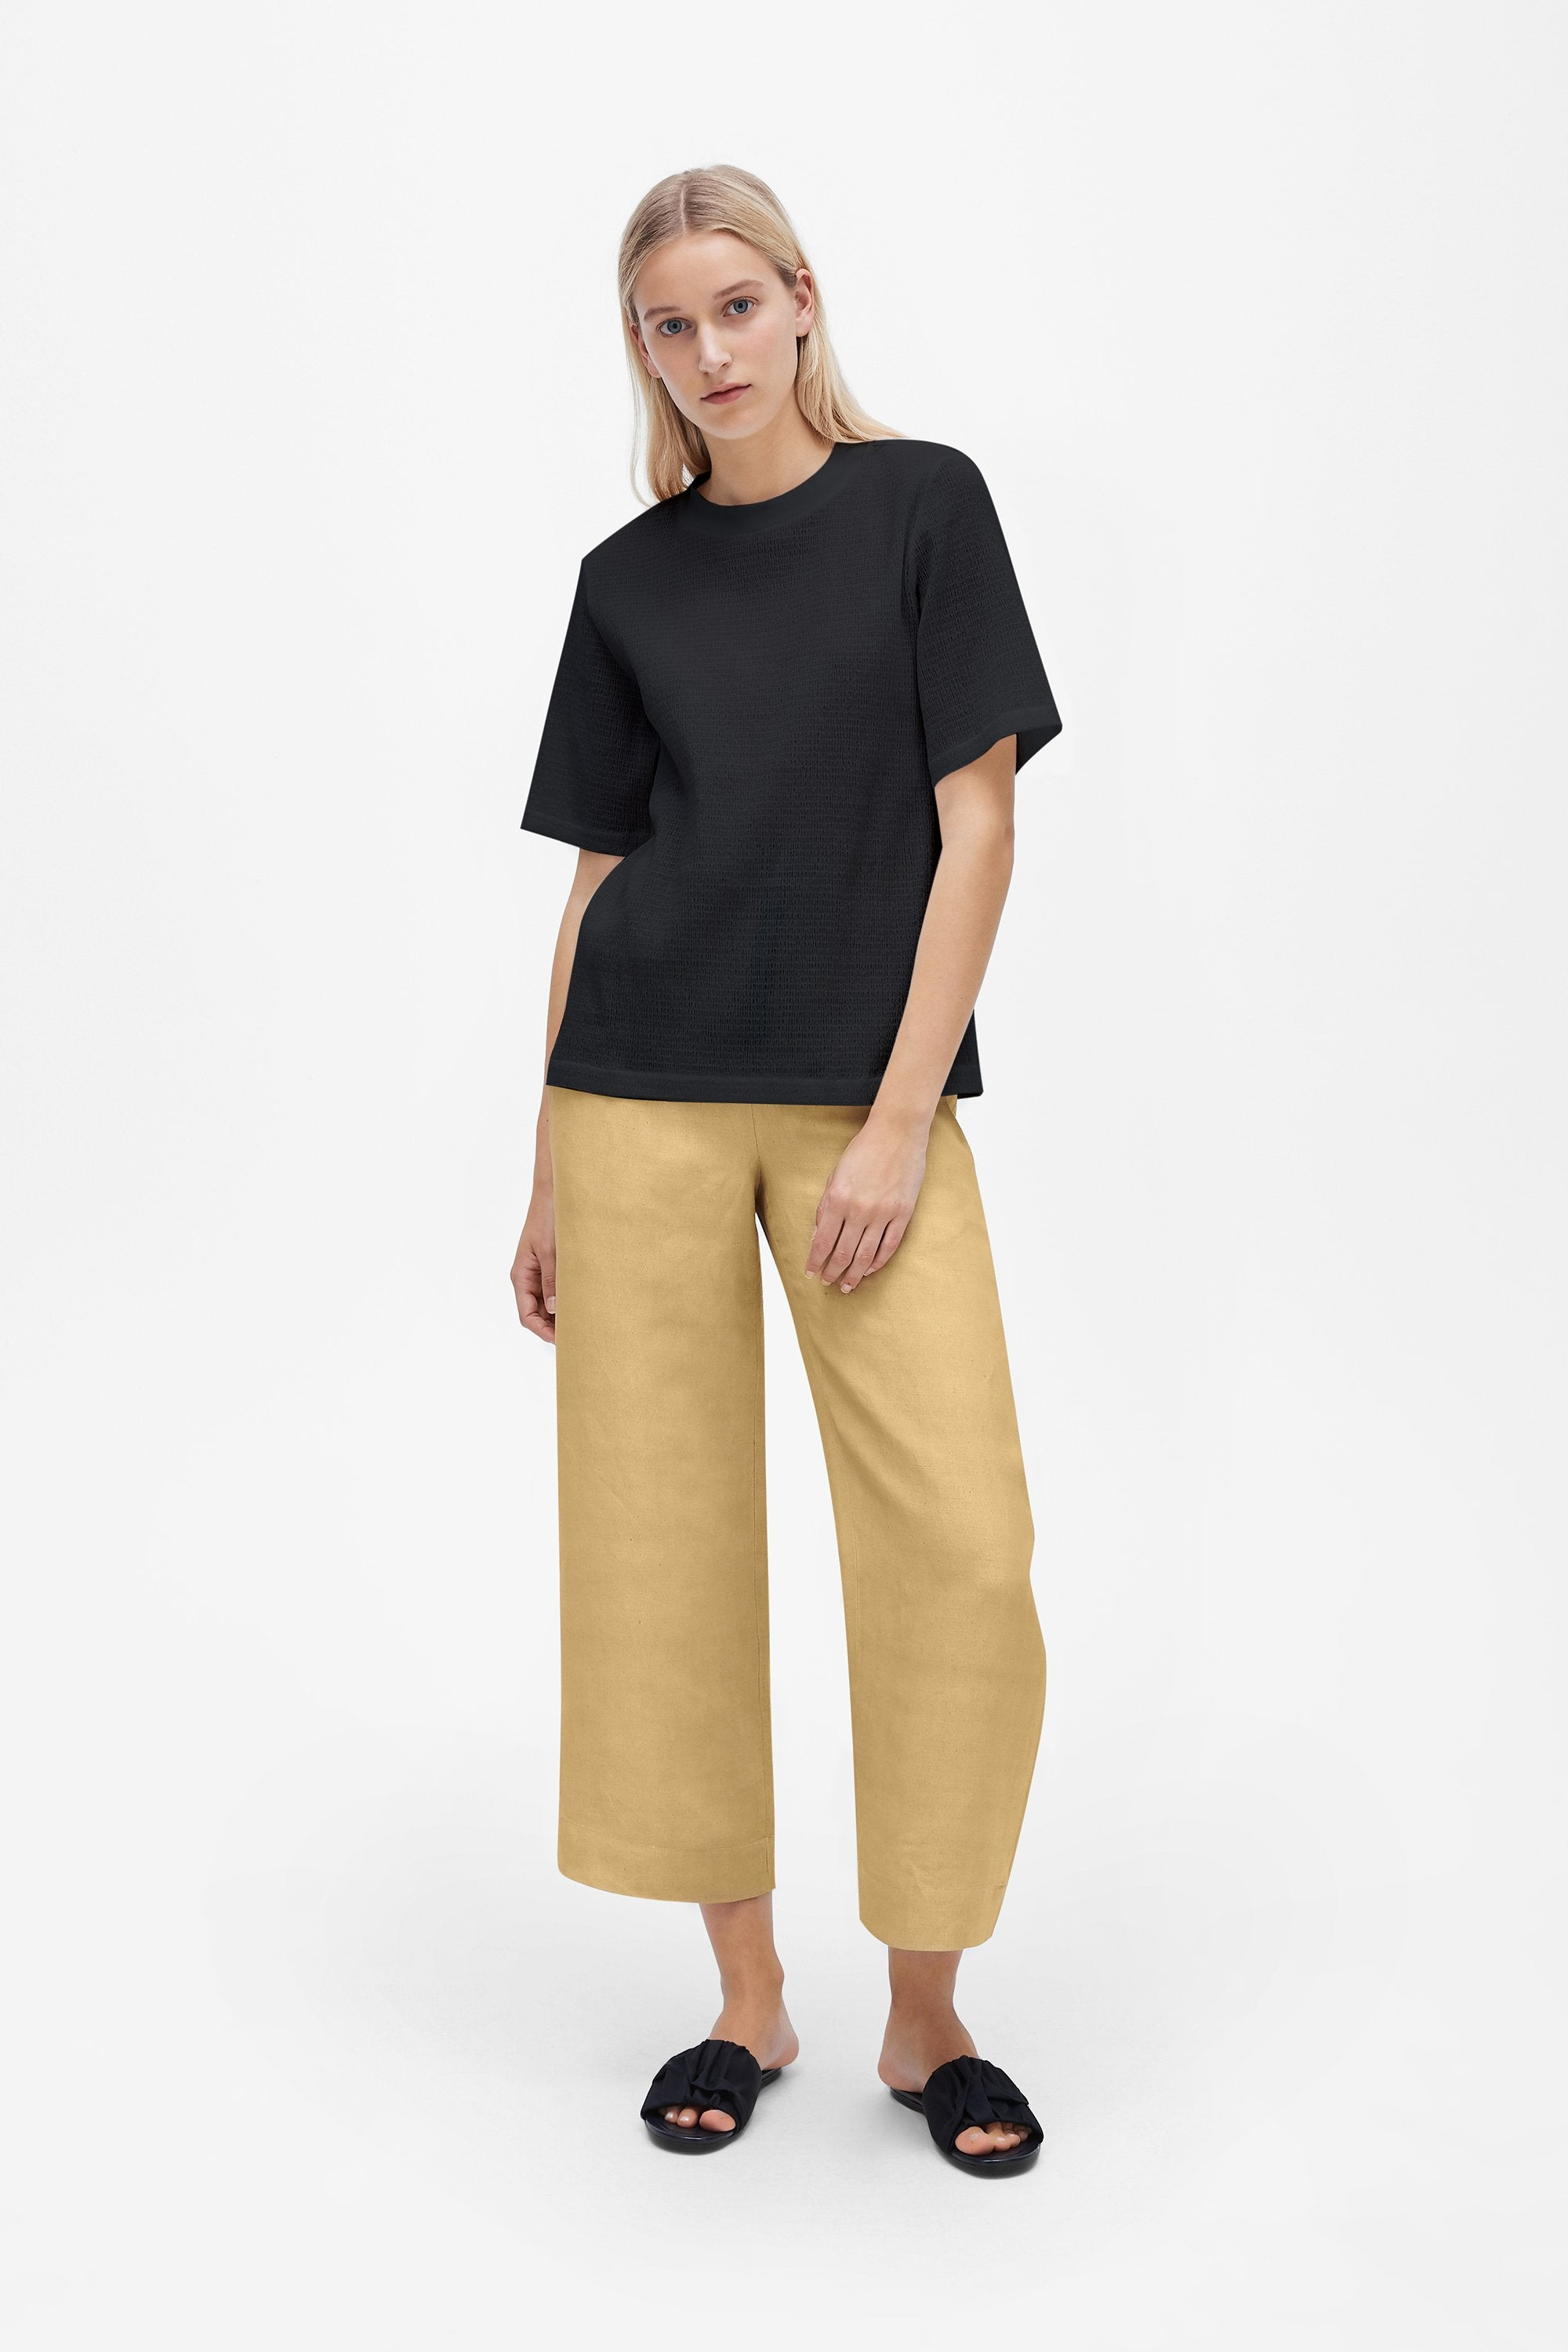 Classic t-shirt - Shirred voile - Black - Resortwear top - Her Line